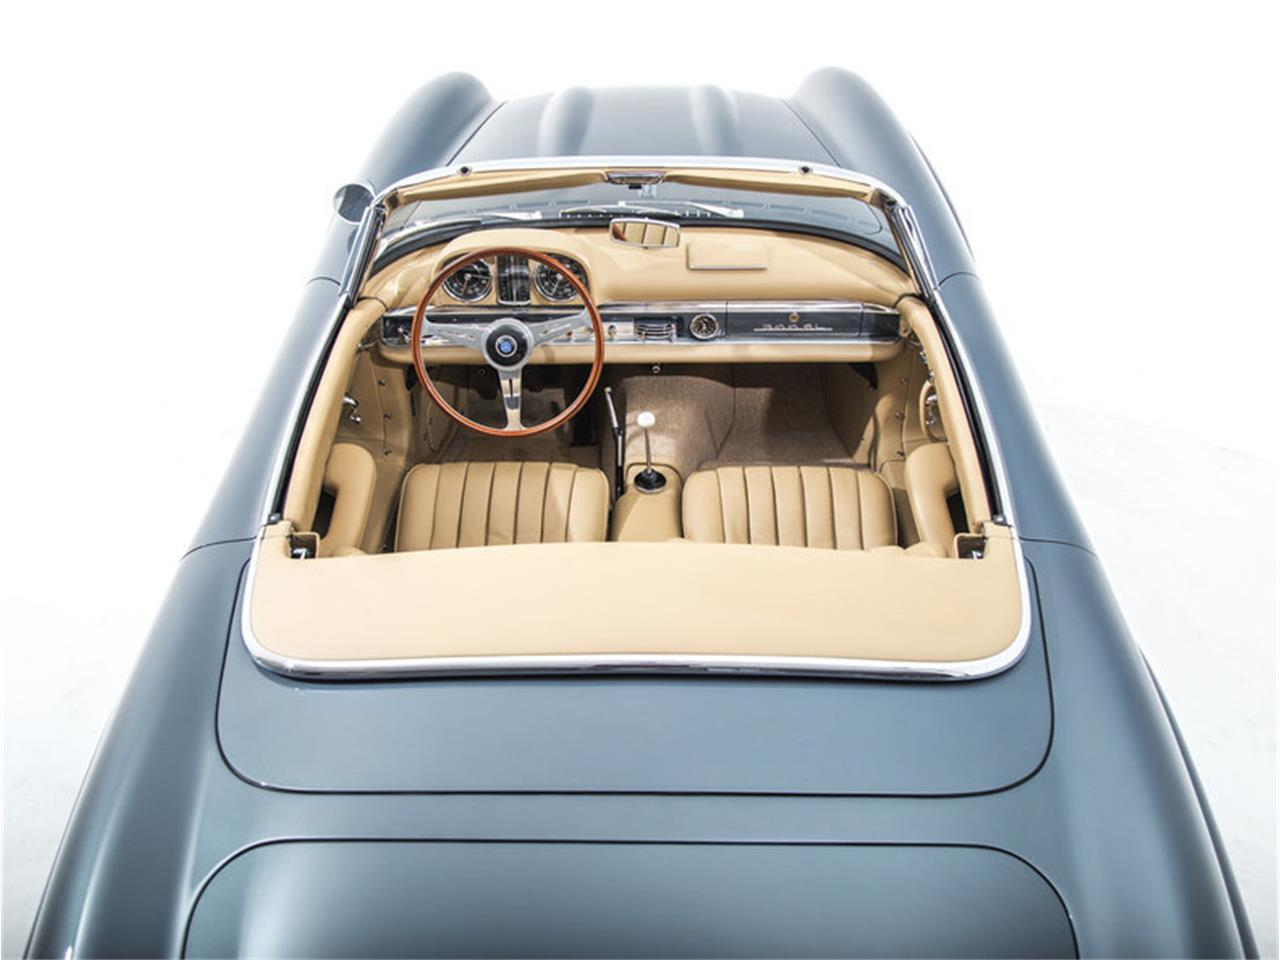 Large Picture of Classic '58 Mercedes-Benz 300SL located in Newport Beach California Auction Vehicle Offered by Morris and Welford - MZA8